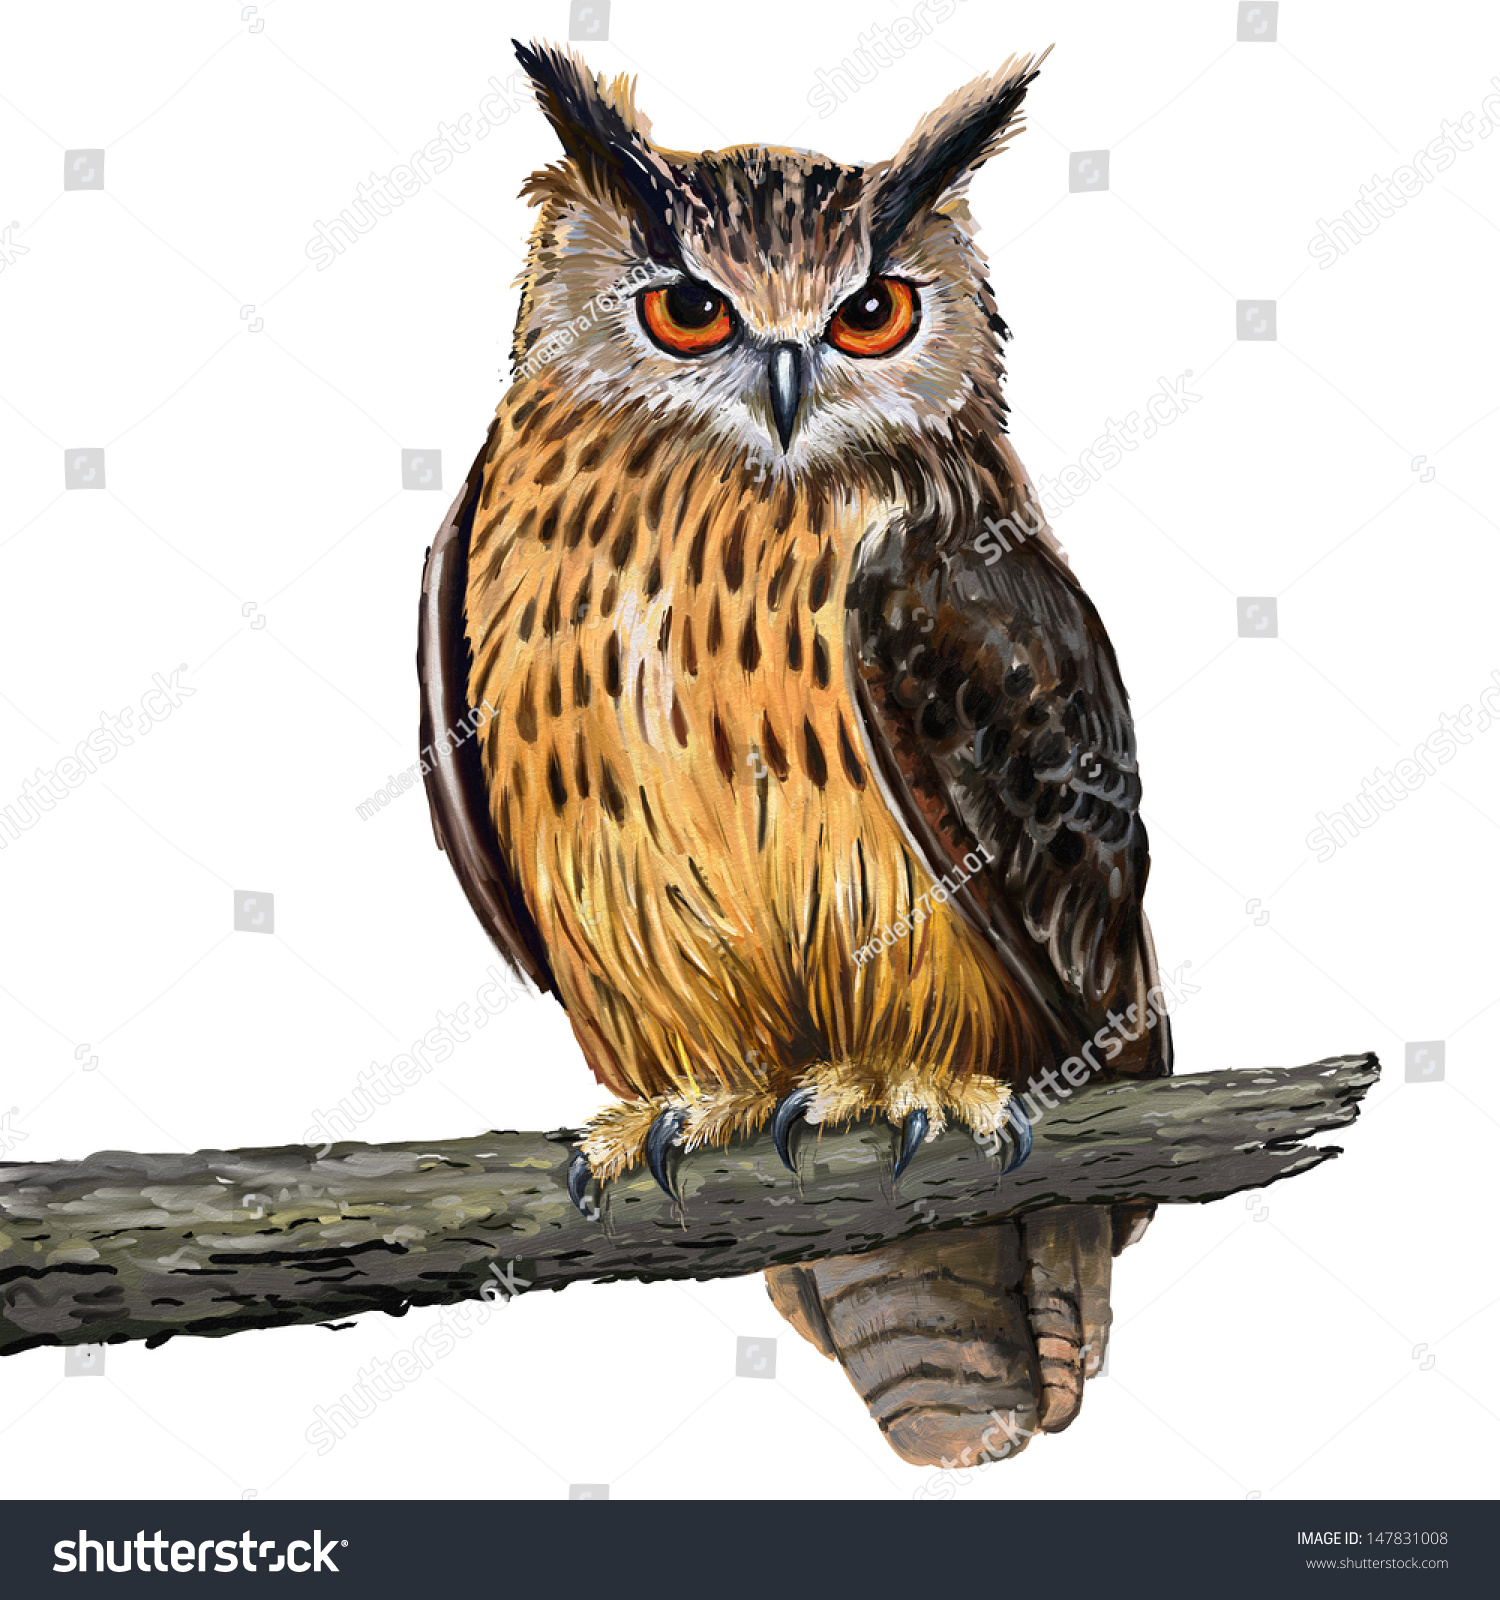 Oil Paintings Owls Stock Photo Digital Painting In Oil Painting Style